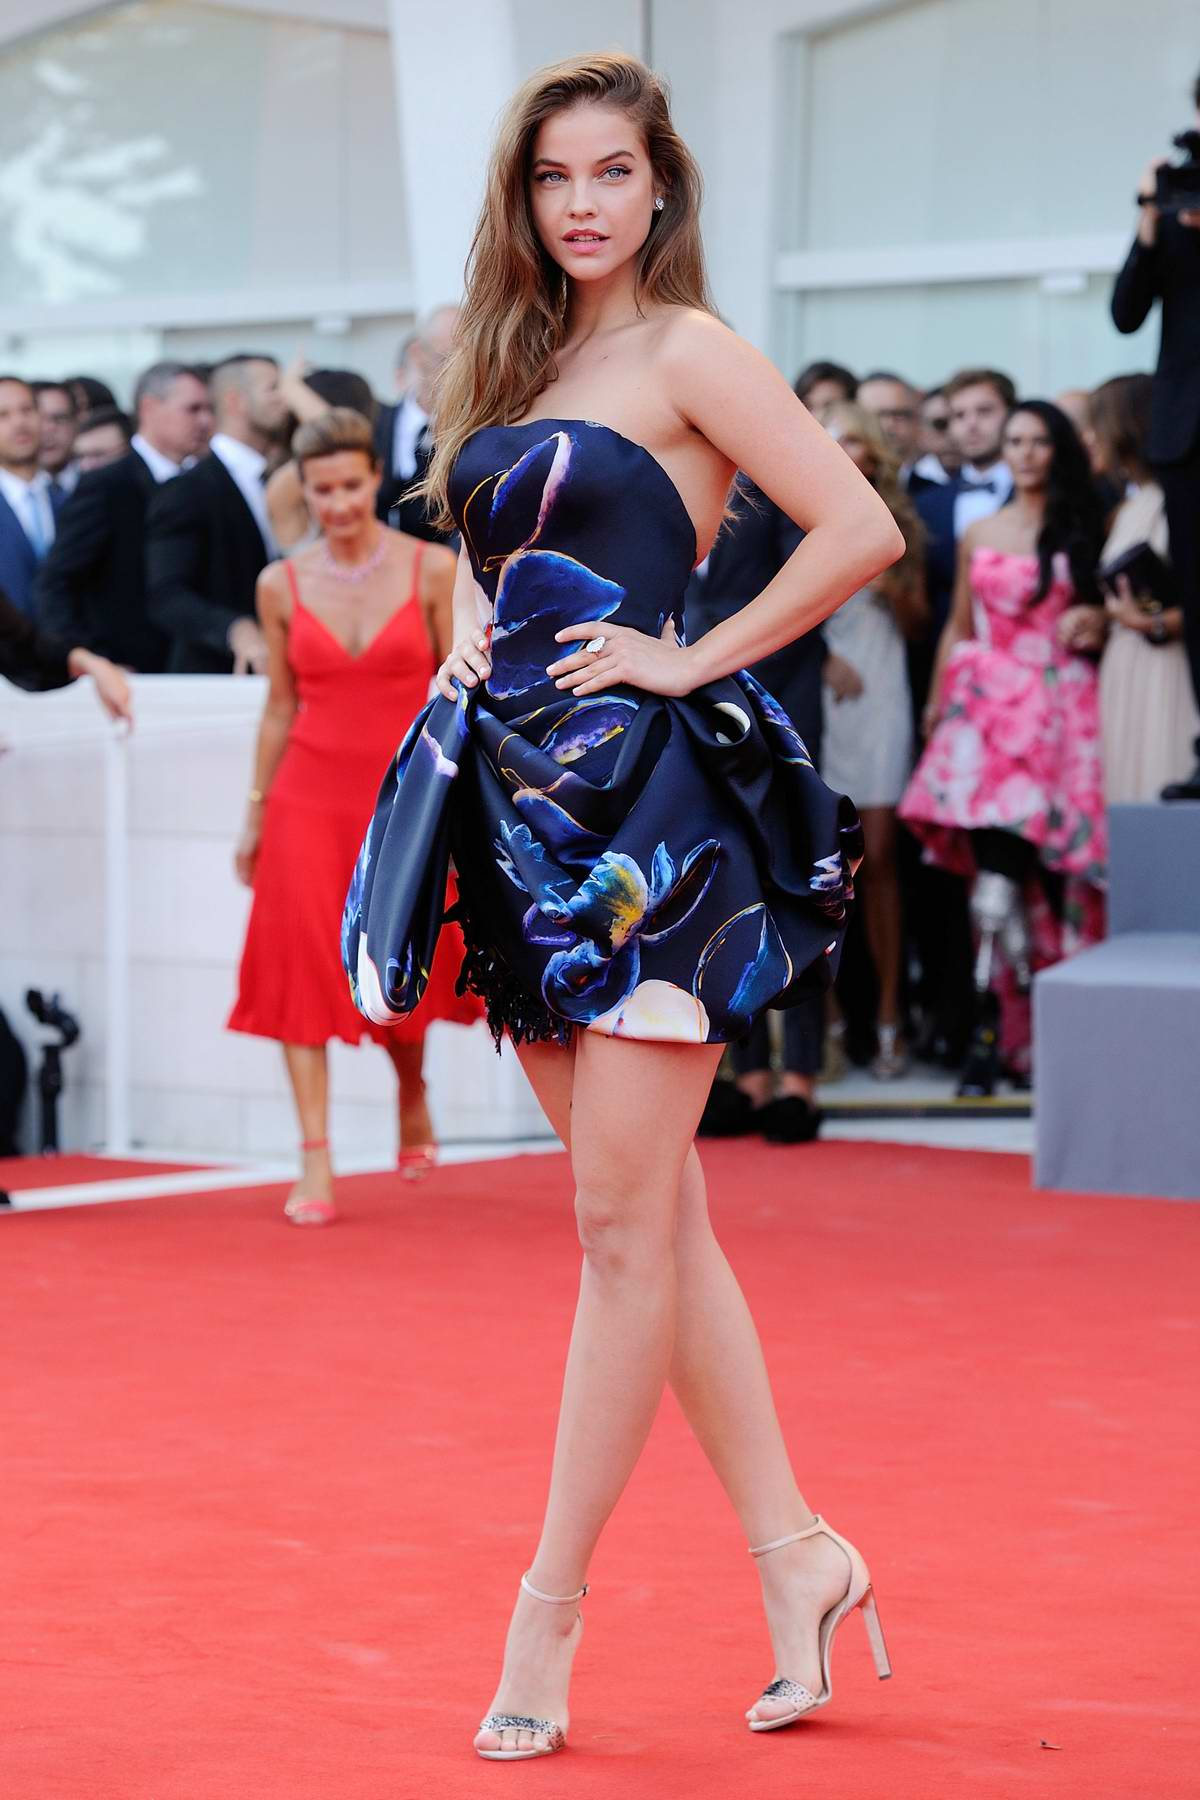 Barbara Palvin attends 'first man' premiere and the Opening Ceremony of the 75th Venice International Film Festival in Venice, Italy